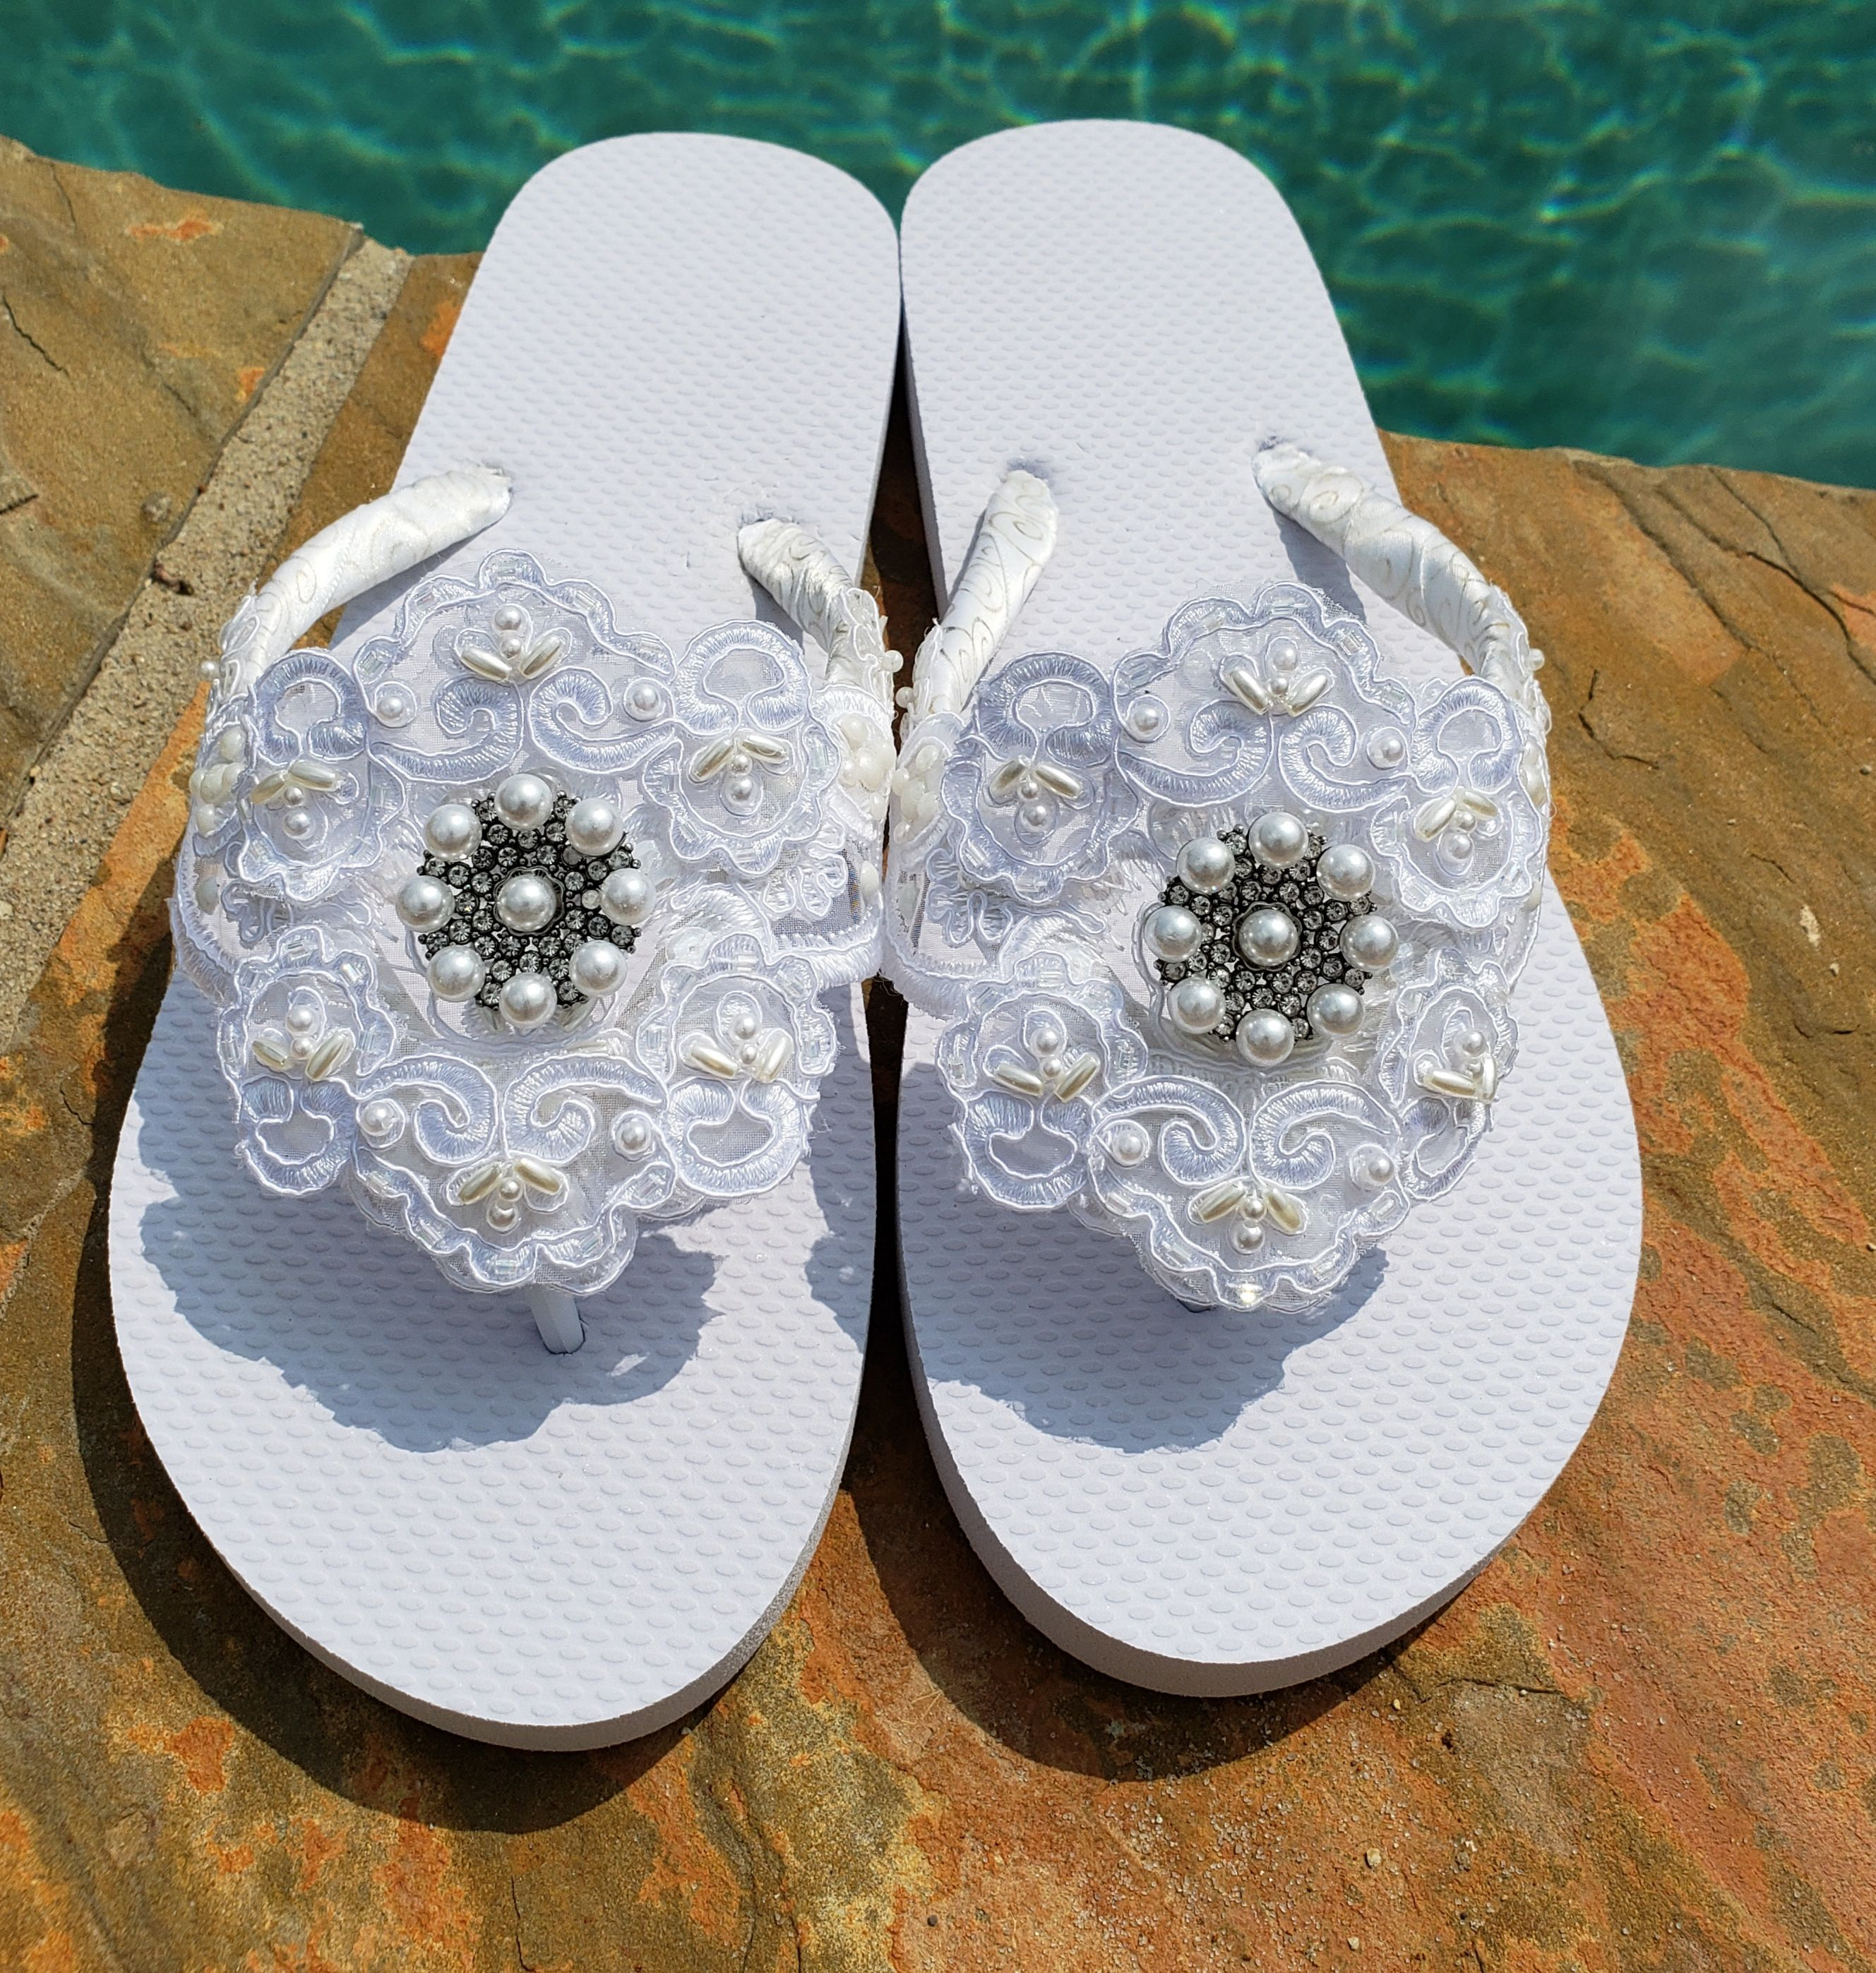 White Bridal Flip Flops, Bridal Lace, Bridal Pearls, Beach Wedding Shoes, Bridesmaid Slippers, Wedding Sandals, Bachelorette Party Shoes